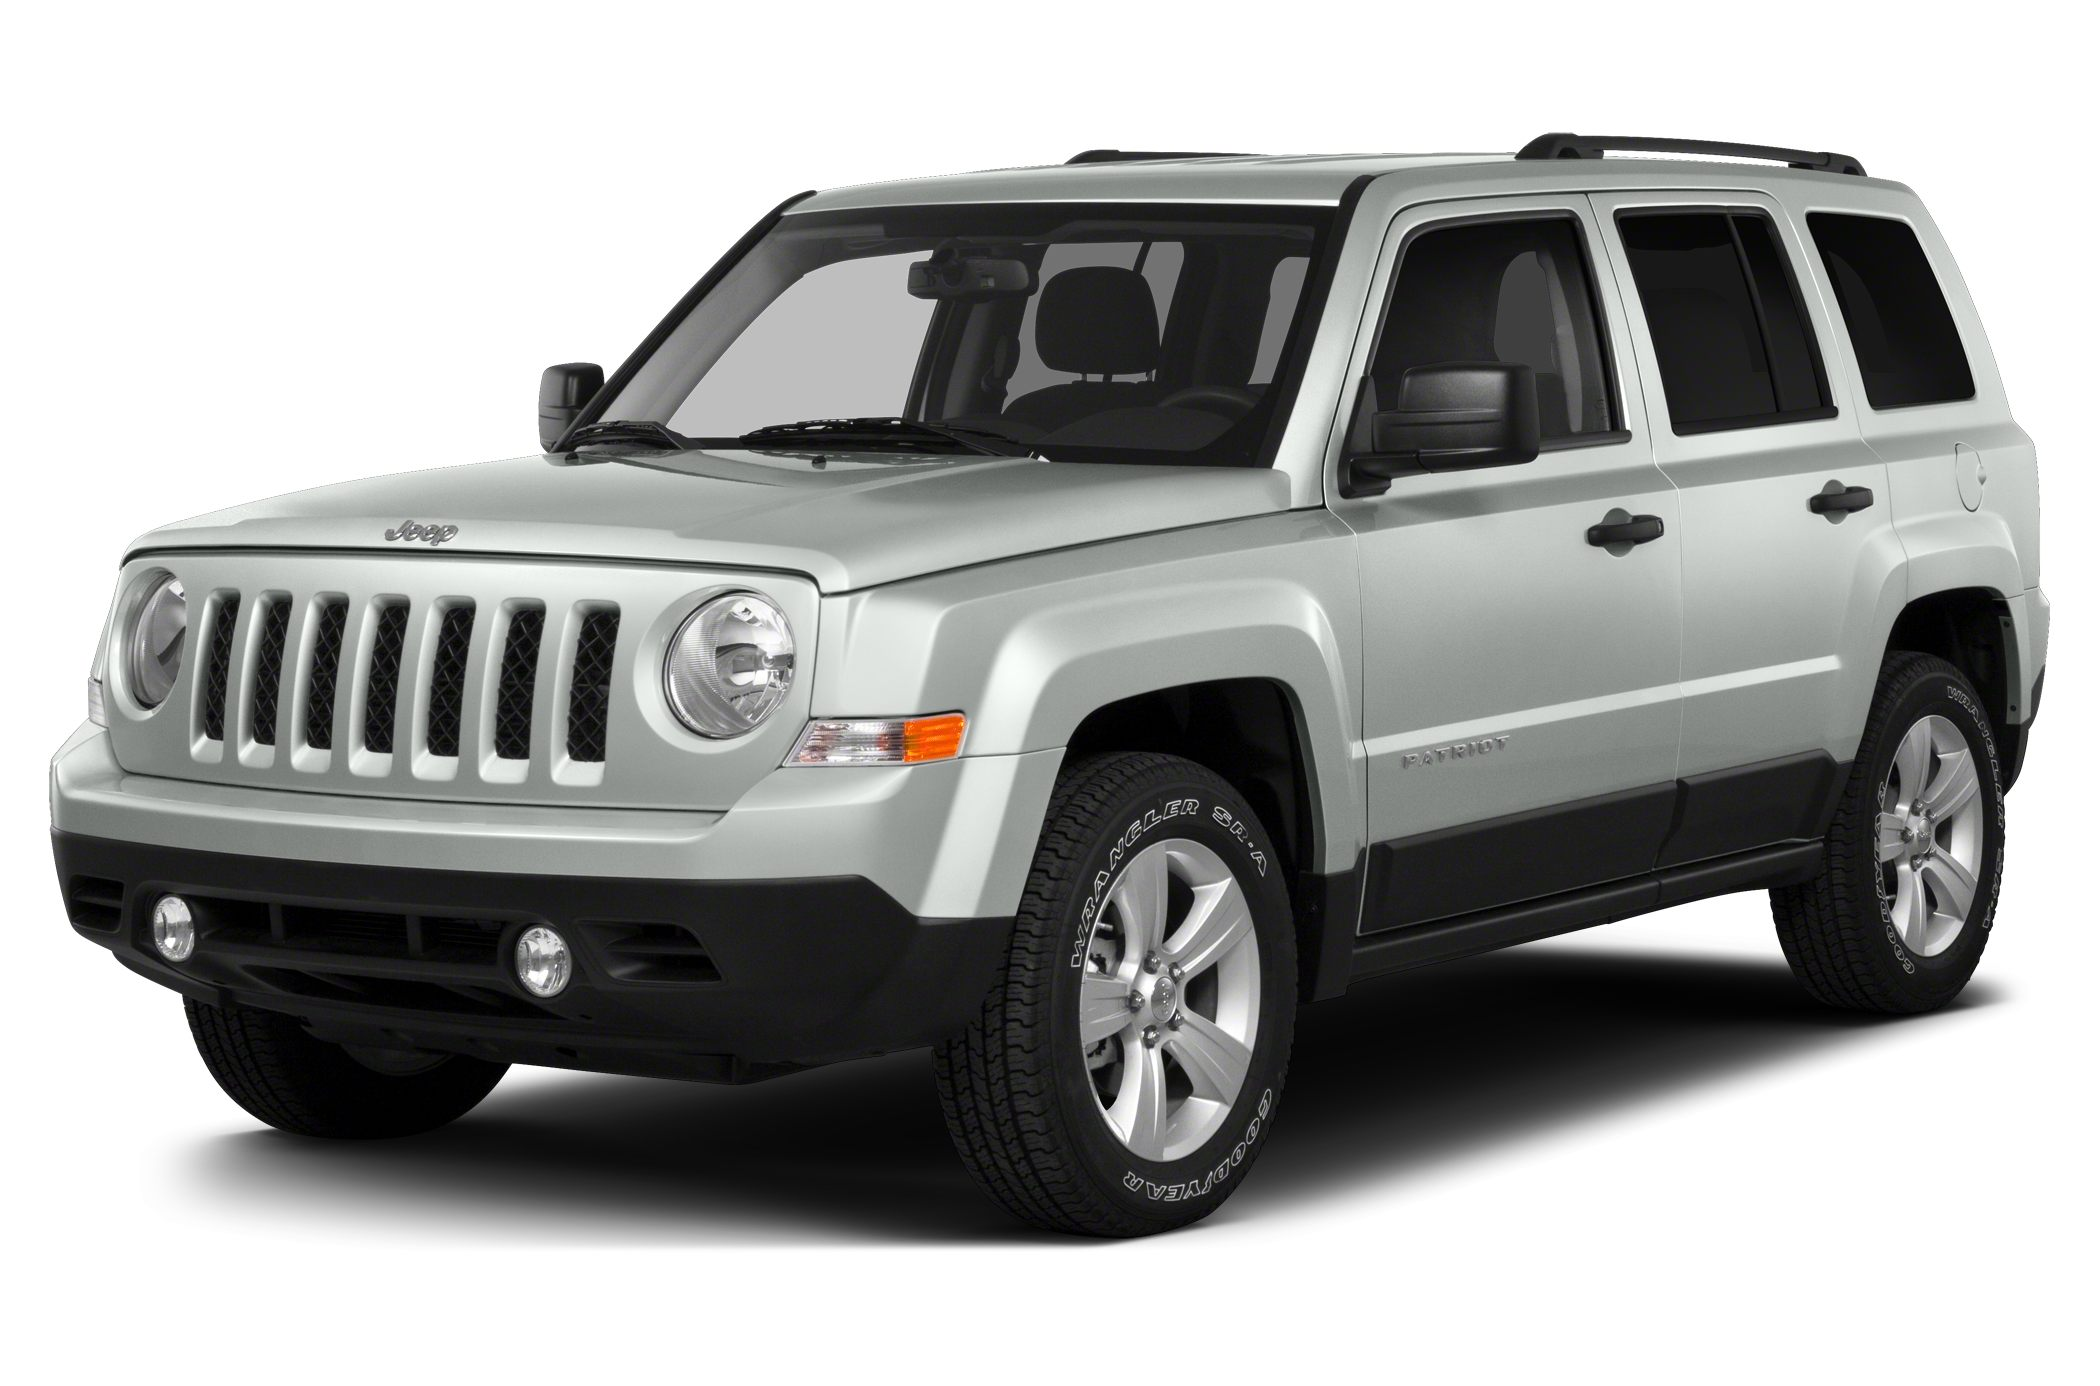 2015 Jeep Patriot Sport SUV for sale in La Grange for $20,237 with 1 miles.